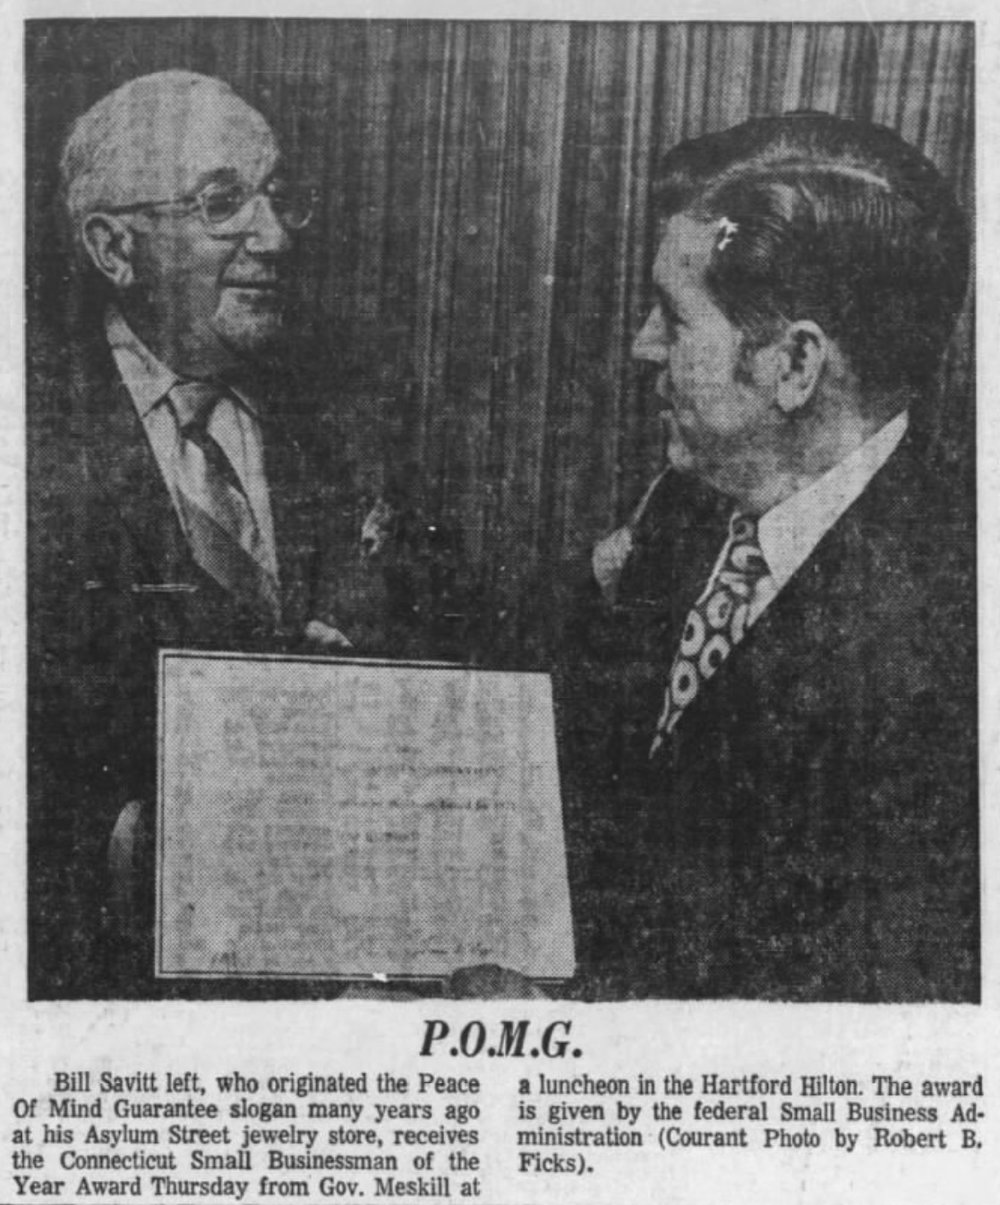 Connecticut Small Businessman of the Year Award, 1971.